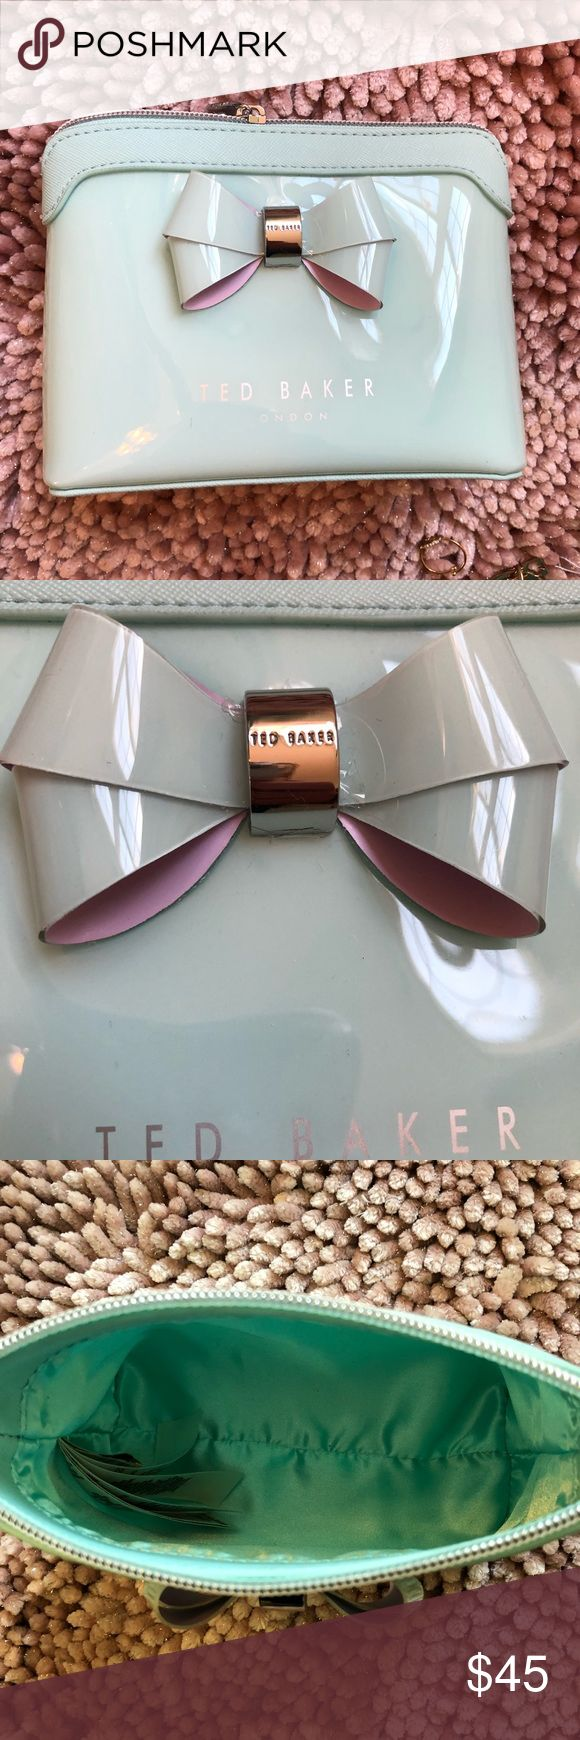 Ted Baker Cosmetic Pouch NOWT! Ted Baker Cosmetic pouch in light blue with silk lining. Very luxurious. Super cute and very durable Ted Baker London Bags Cosmetic Bags & Cases